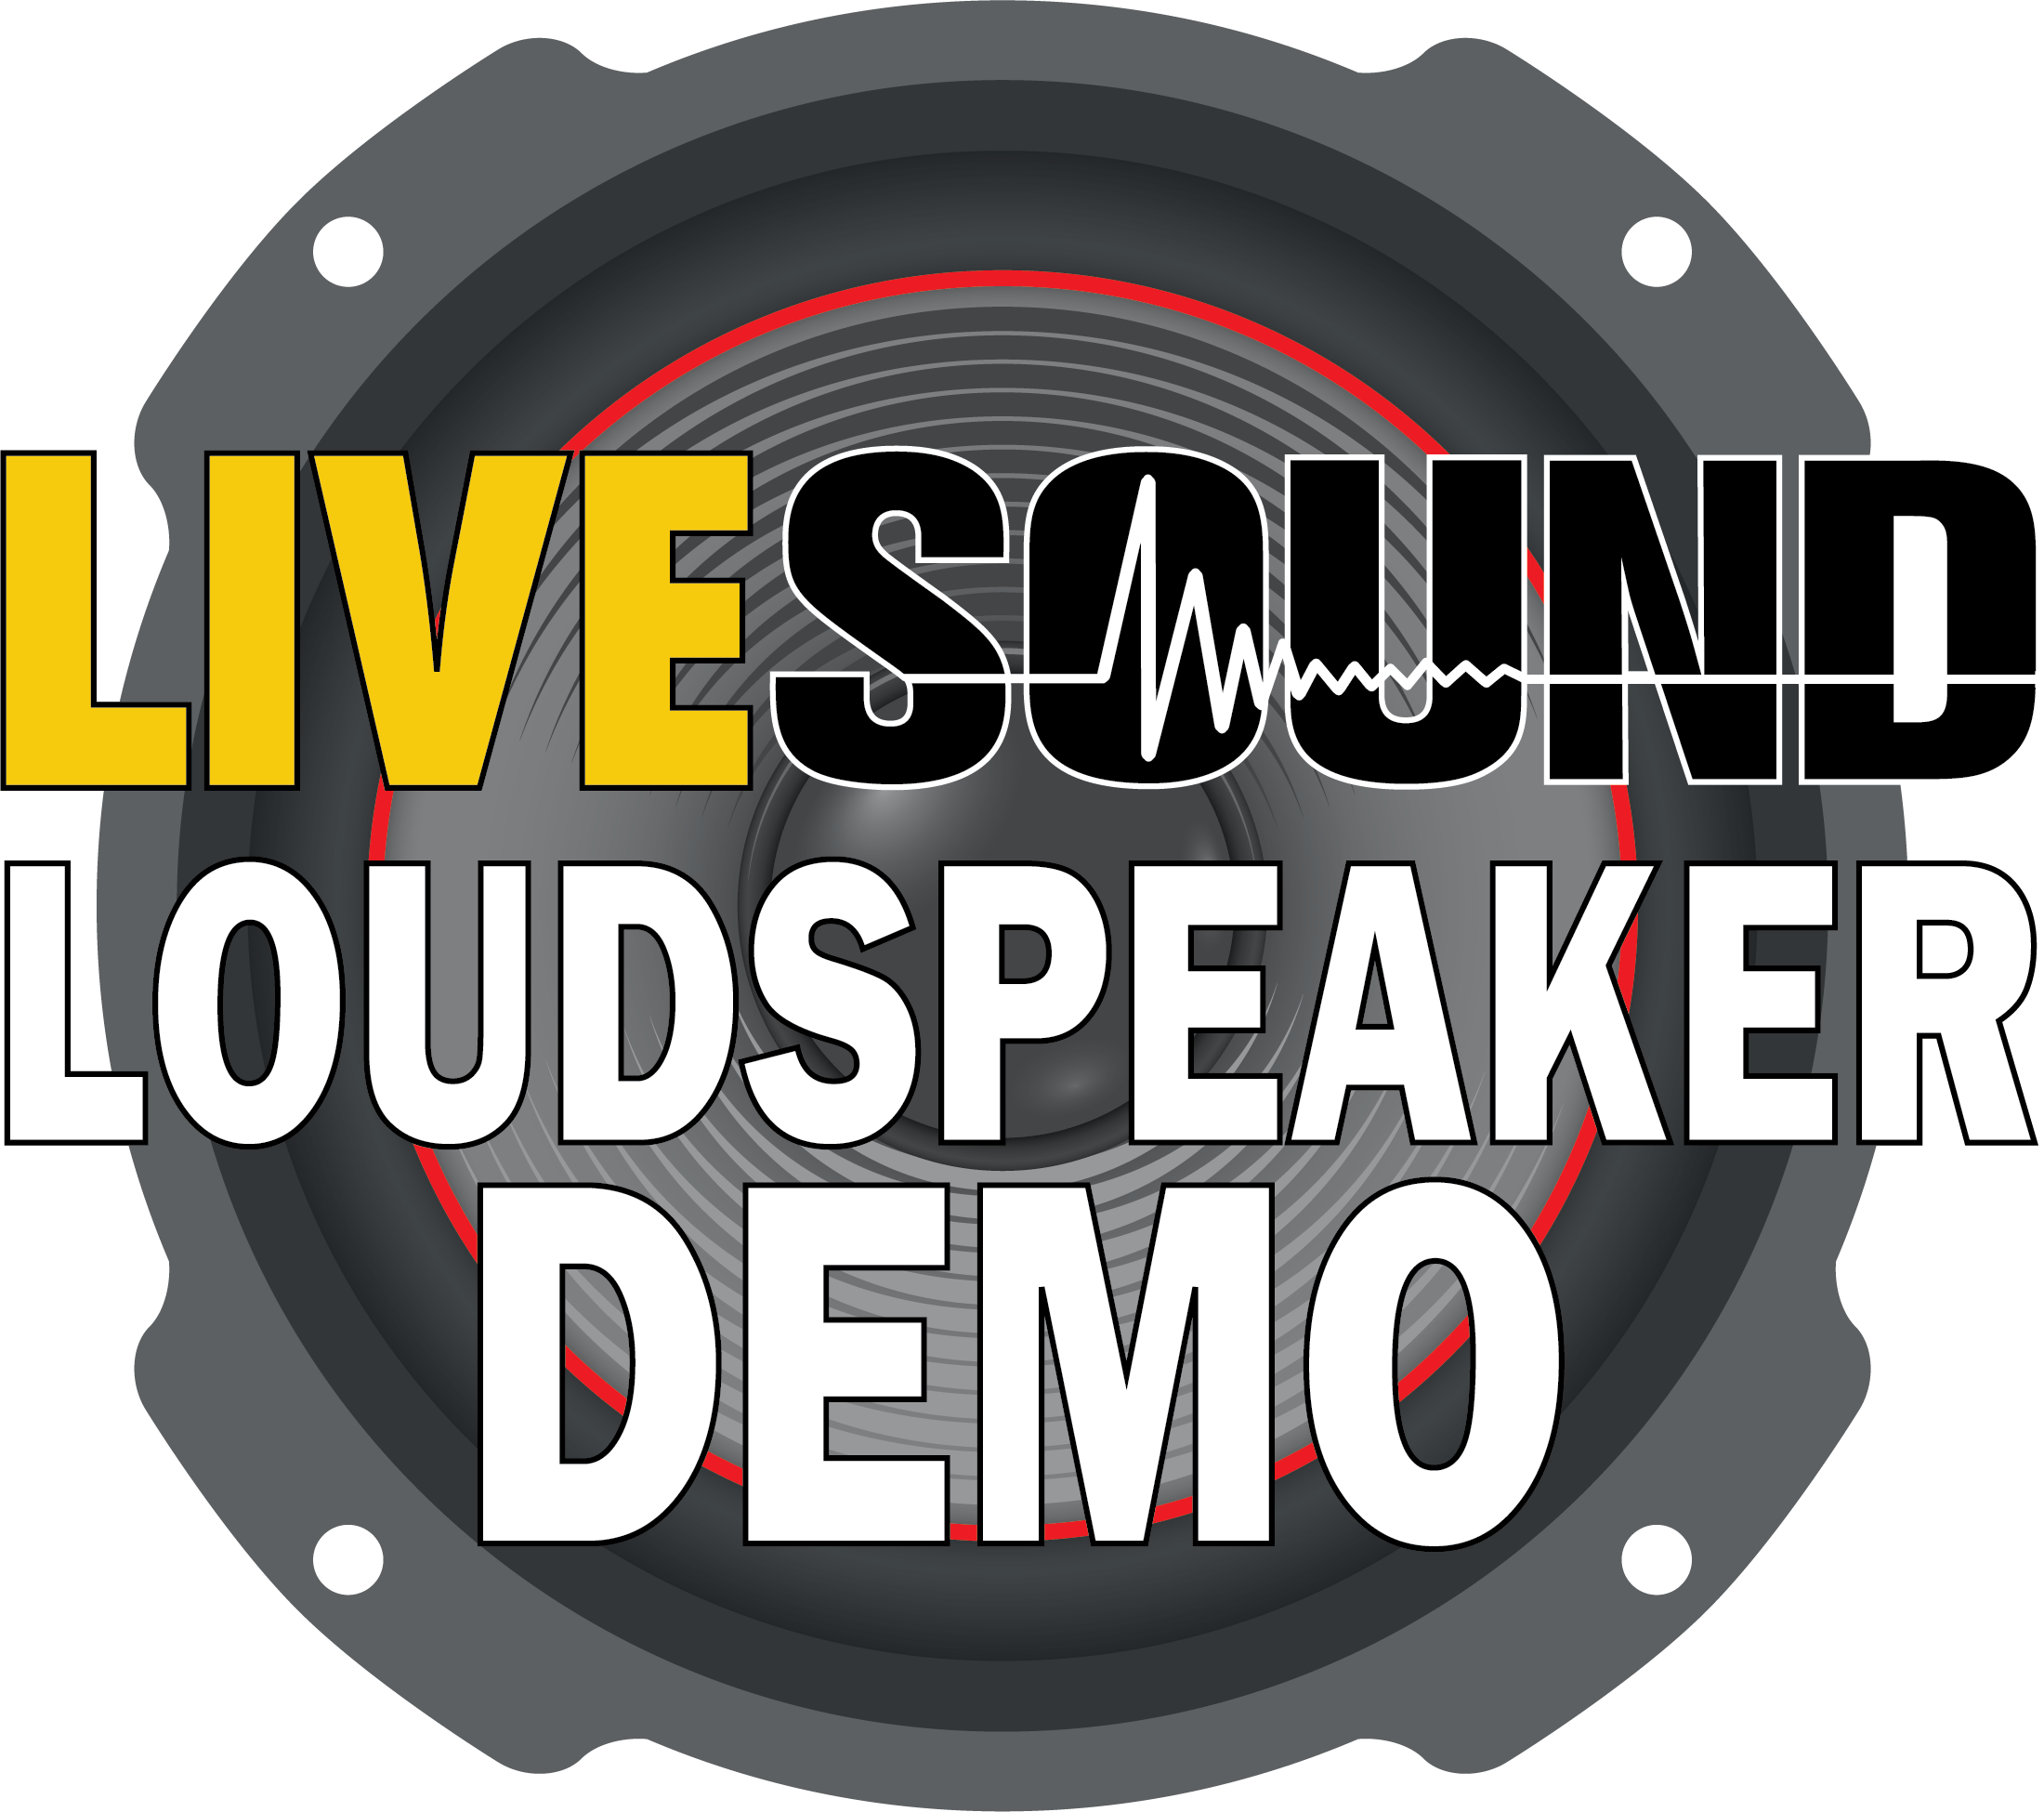 Live Sound Loudspeaker Demo